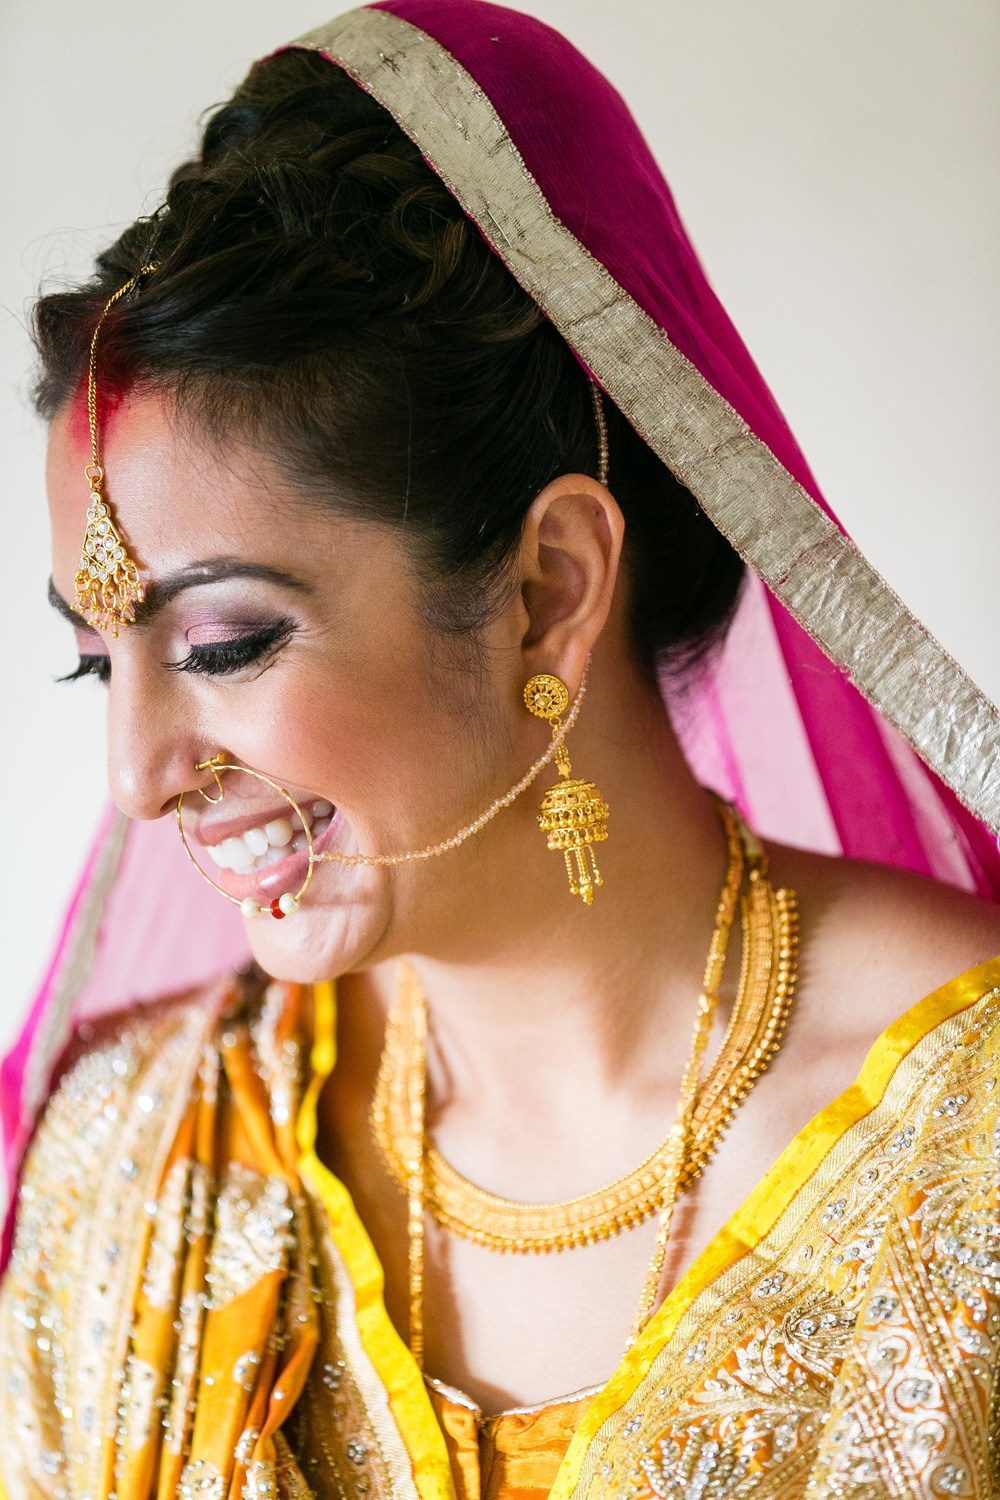 Indian-Wedding-Mariott-Hartford-Connecticut-Documentary-Wedding-Photography-Jacek-Dolata-23.jpg